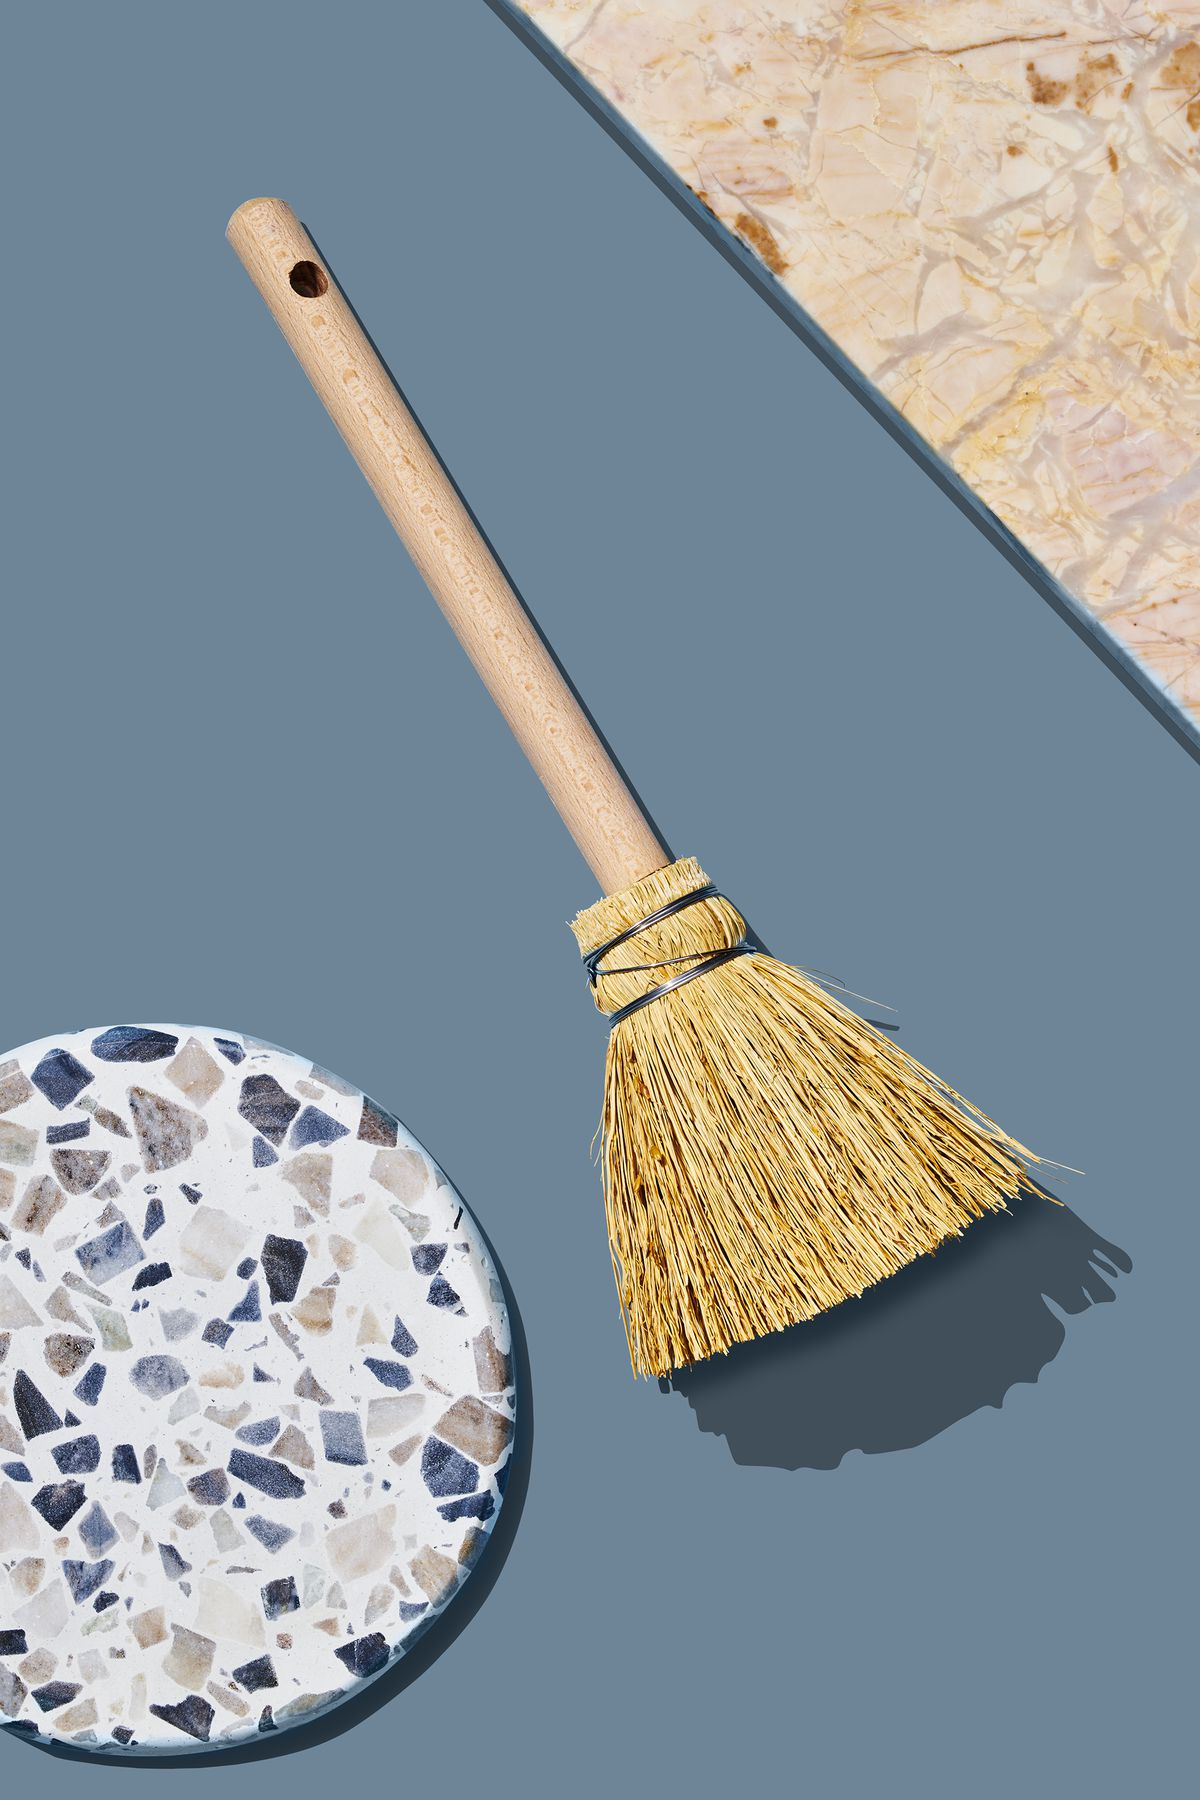 A small straw whisk broom which is part of the Curbed Holiday Gift Guide 2019. The broom is laying on a blue flat surface and is flanked by various design objects.